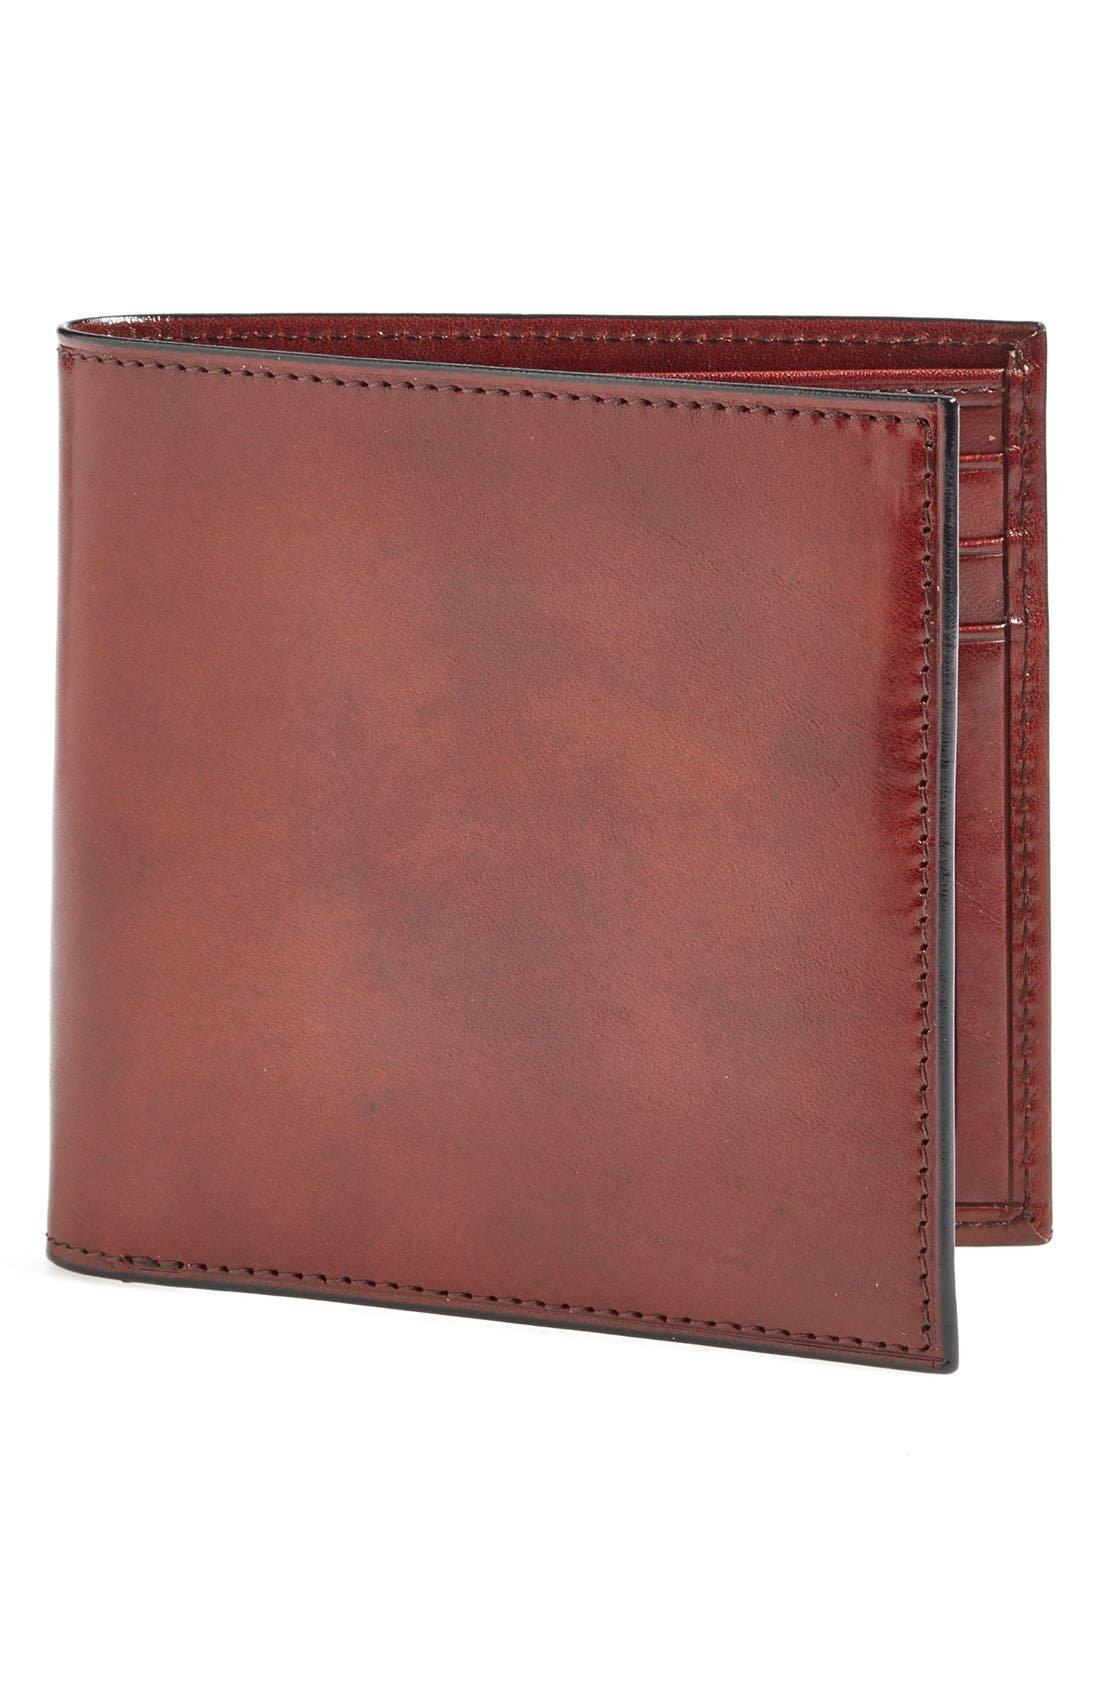 BOSCA Old Leather Bifold Wallet